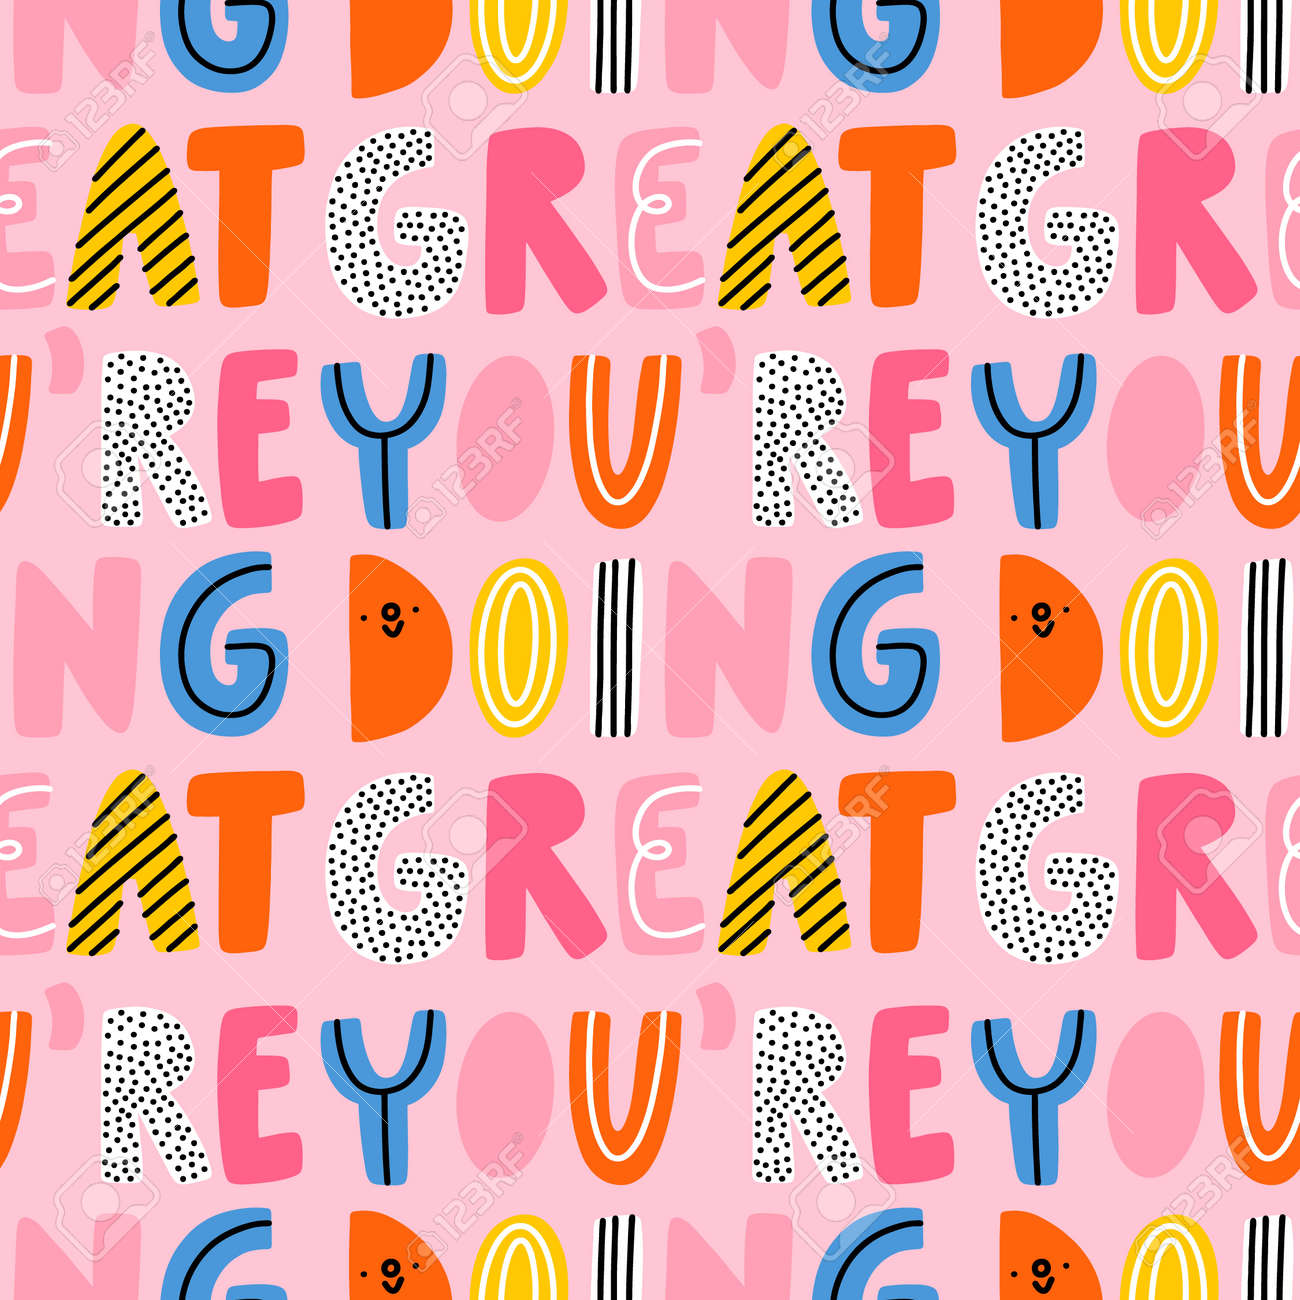 You are doing great, vector seamless pattern with vivid and colorful cartoon lettering - 170268186